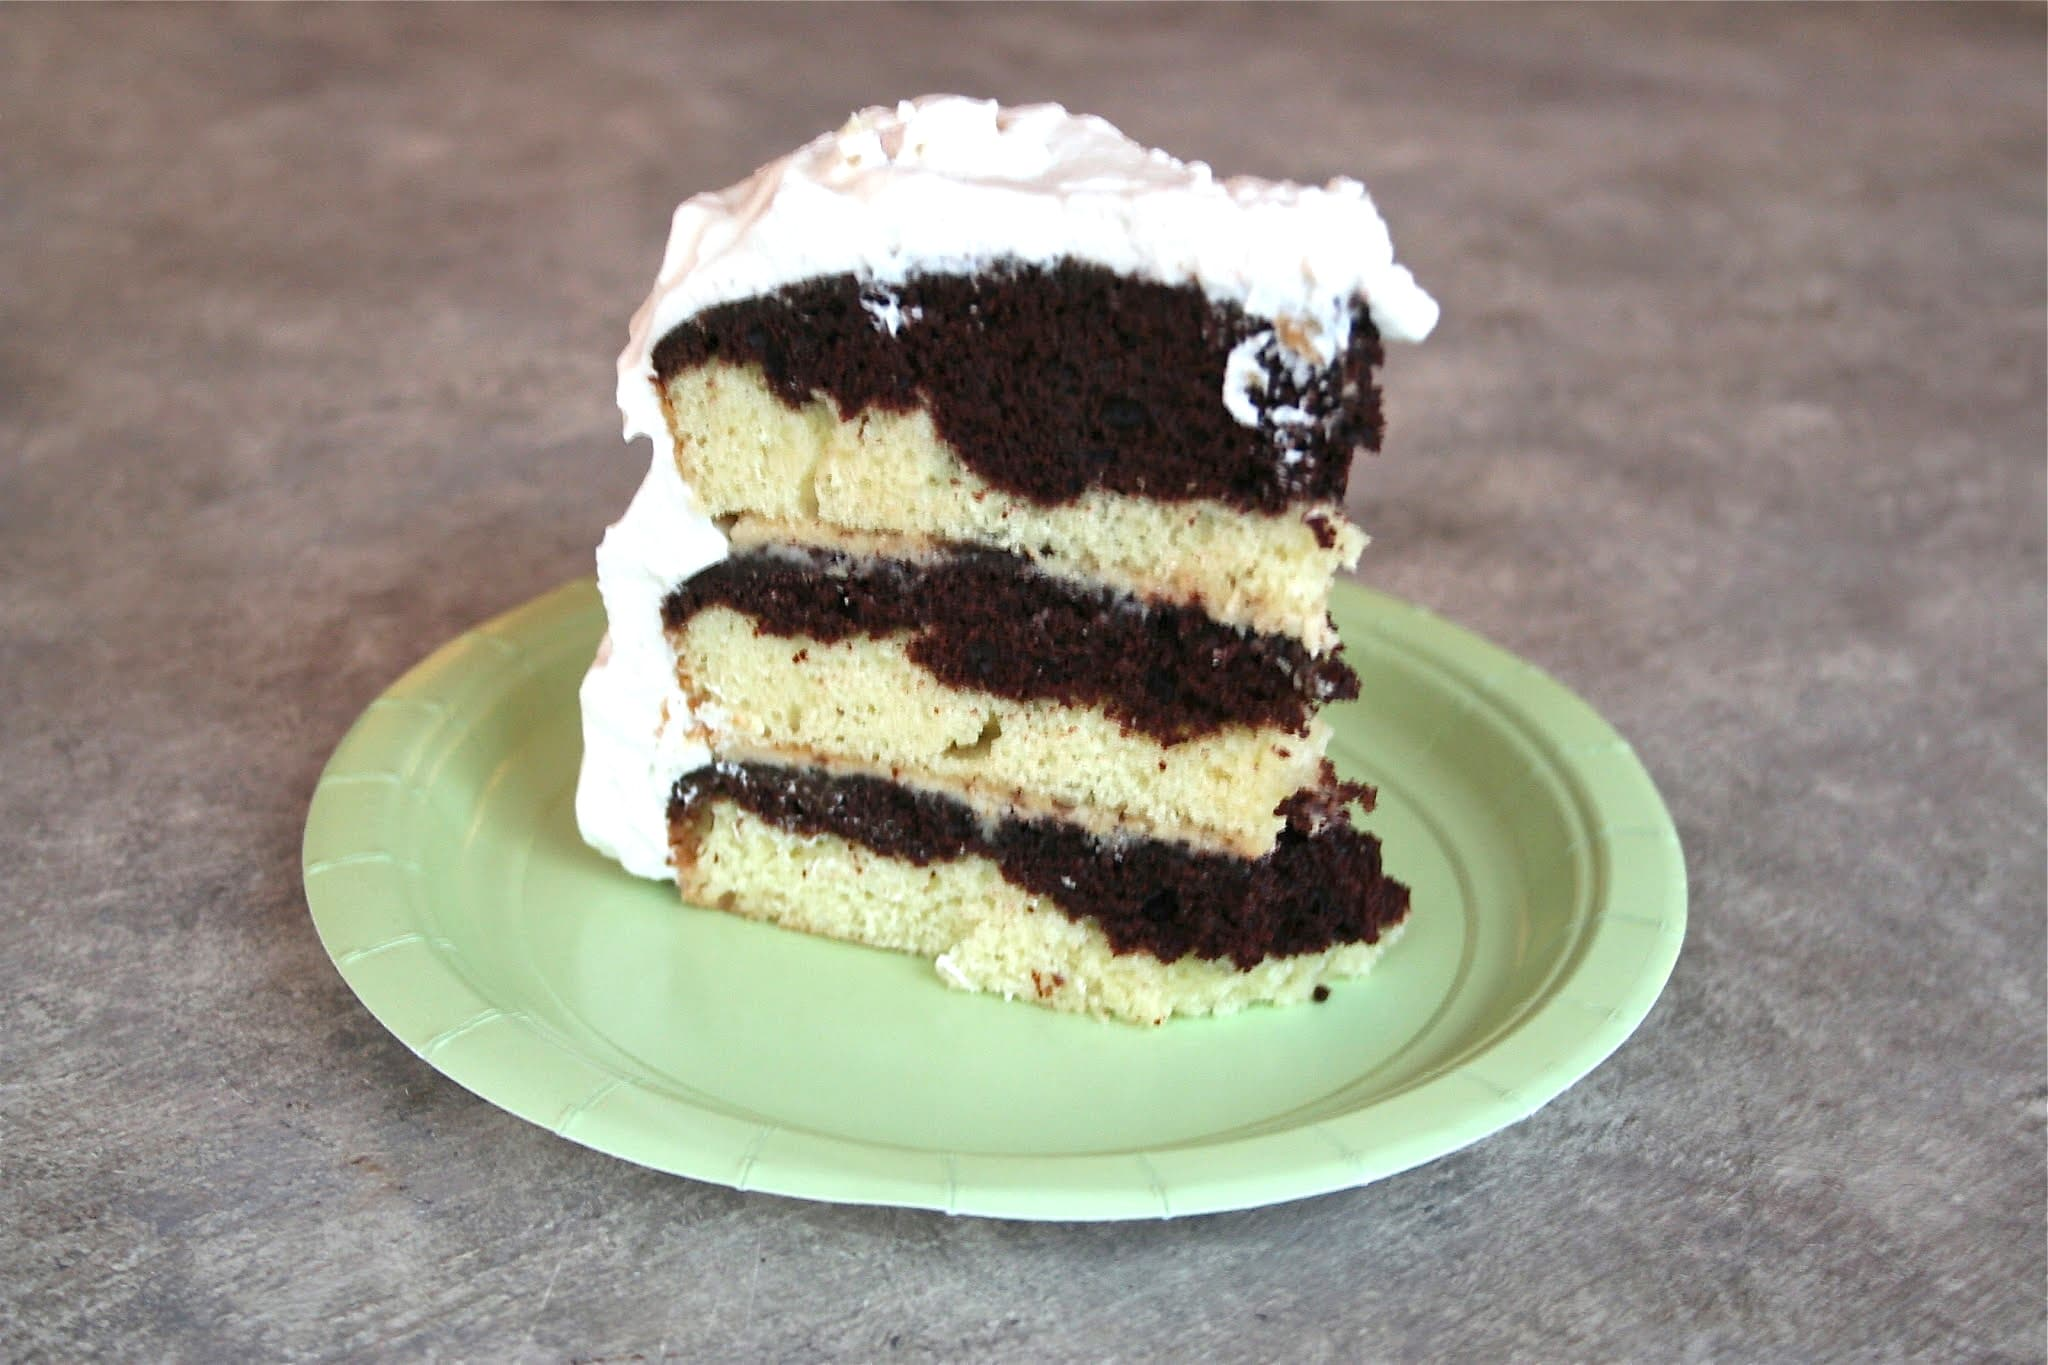 Tuxedo Cake With Mocha Filling And Whipped Cream Topping